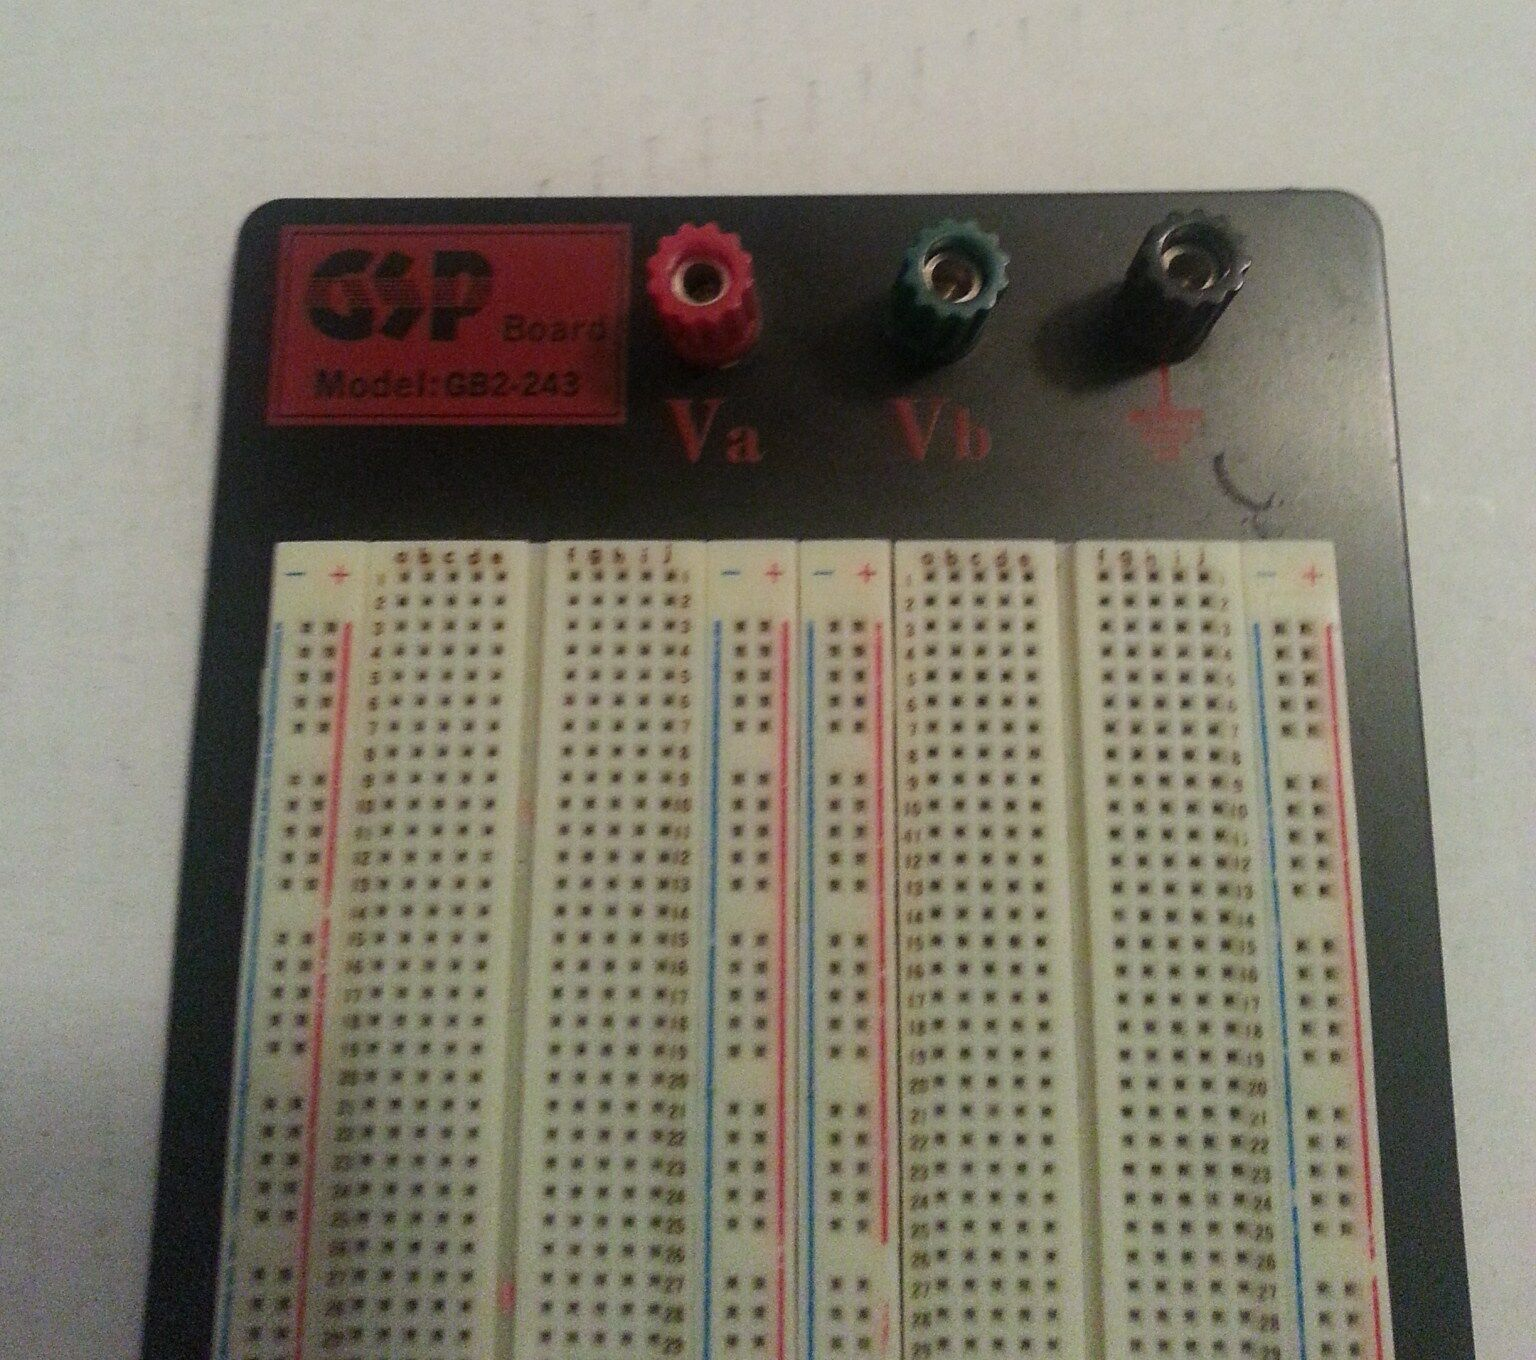 Gsp Gb2 243 Breadboard Electronic Component Circuit Design Test Detail Norton Secured Powered By Verisign